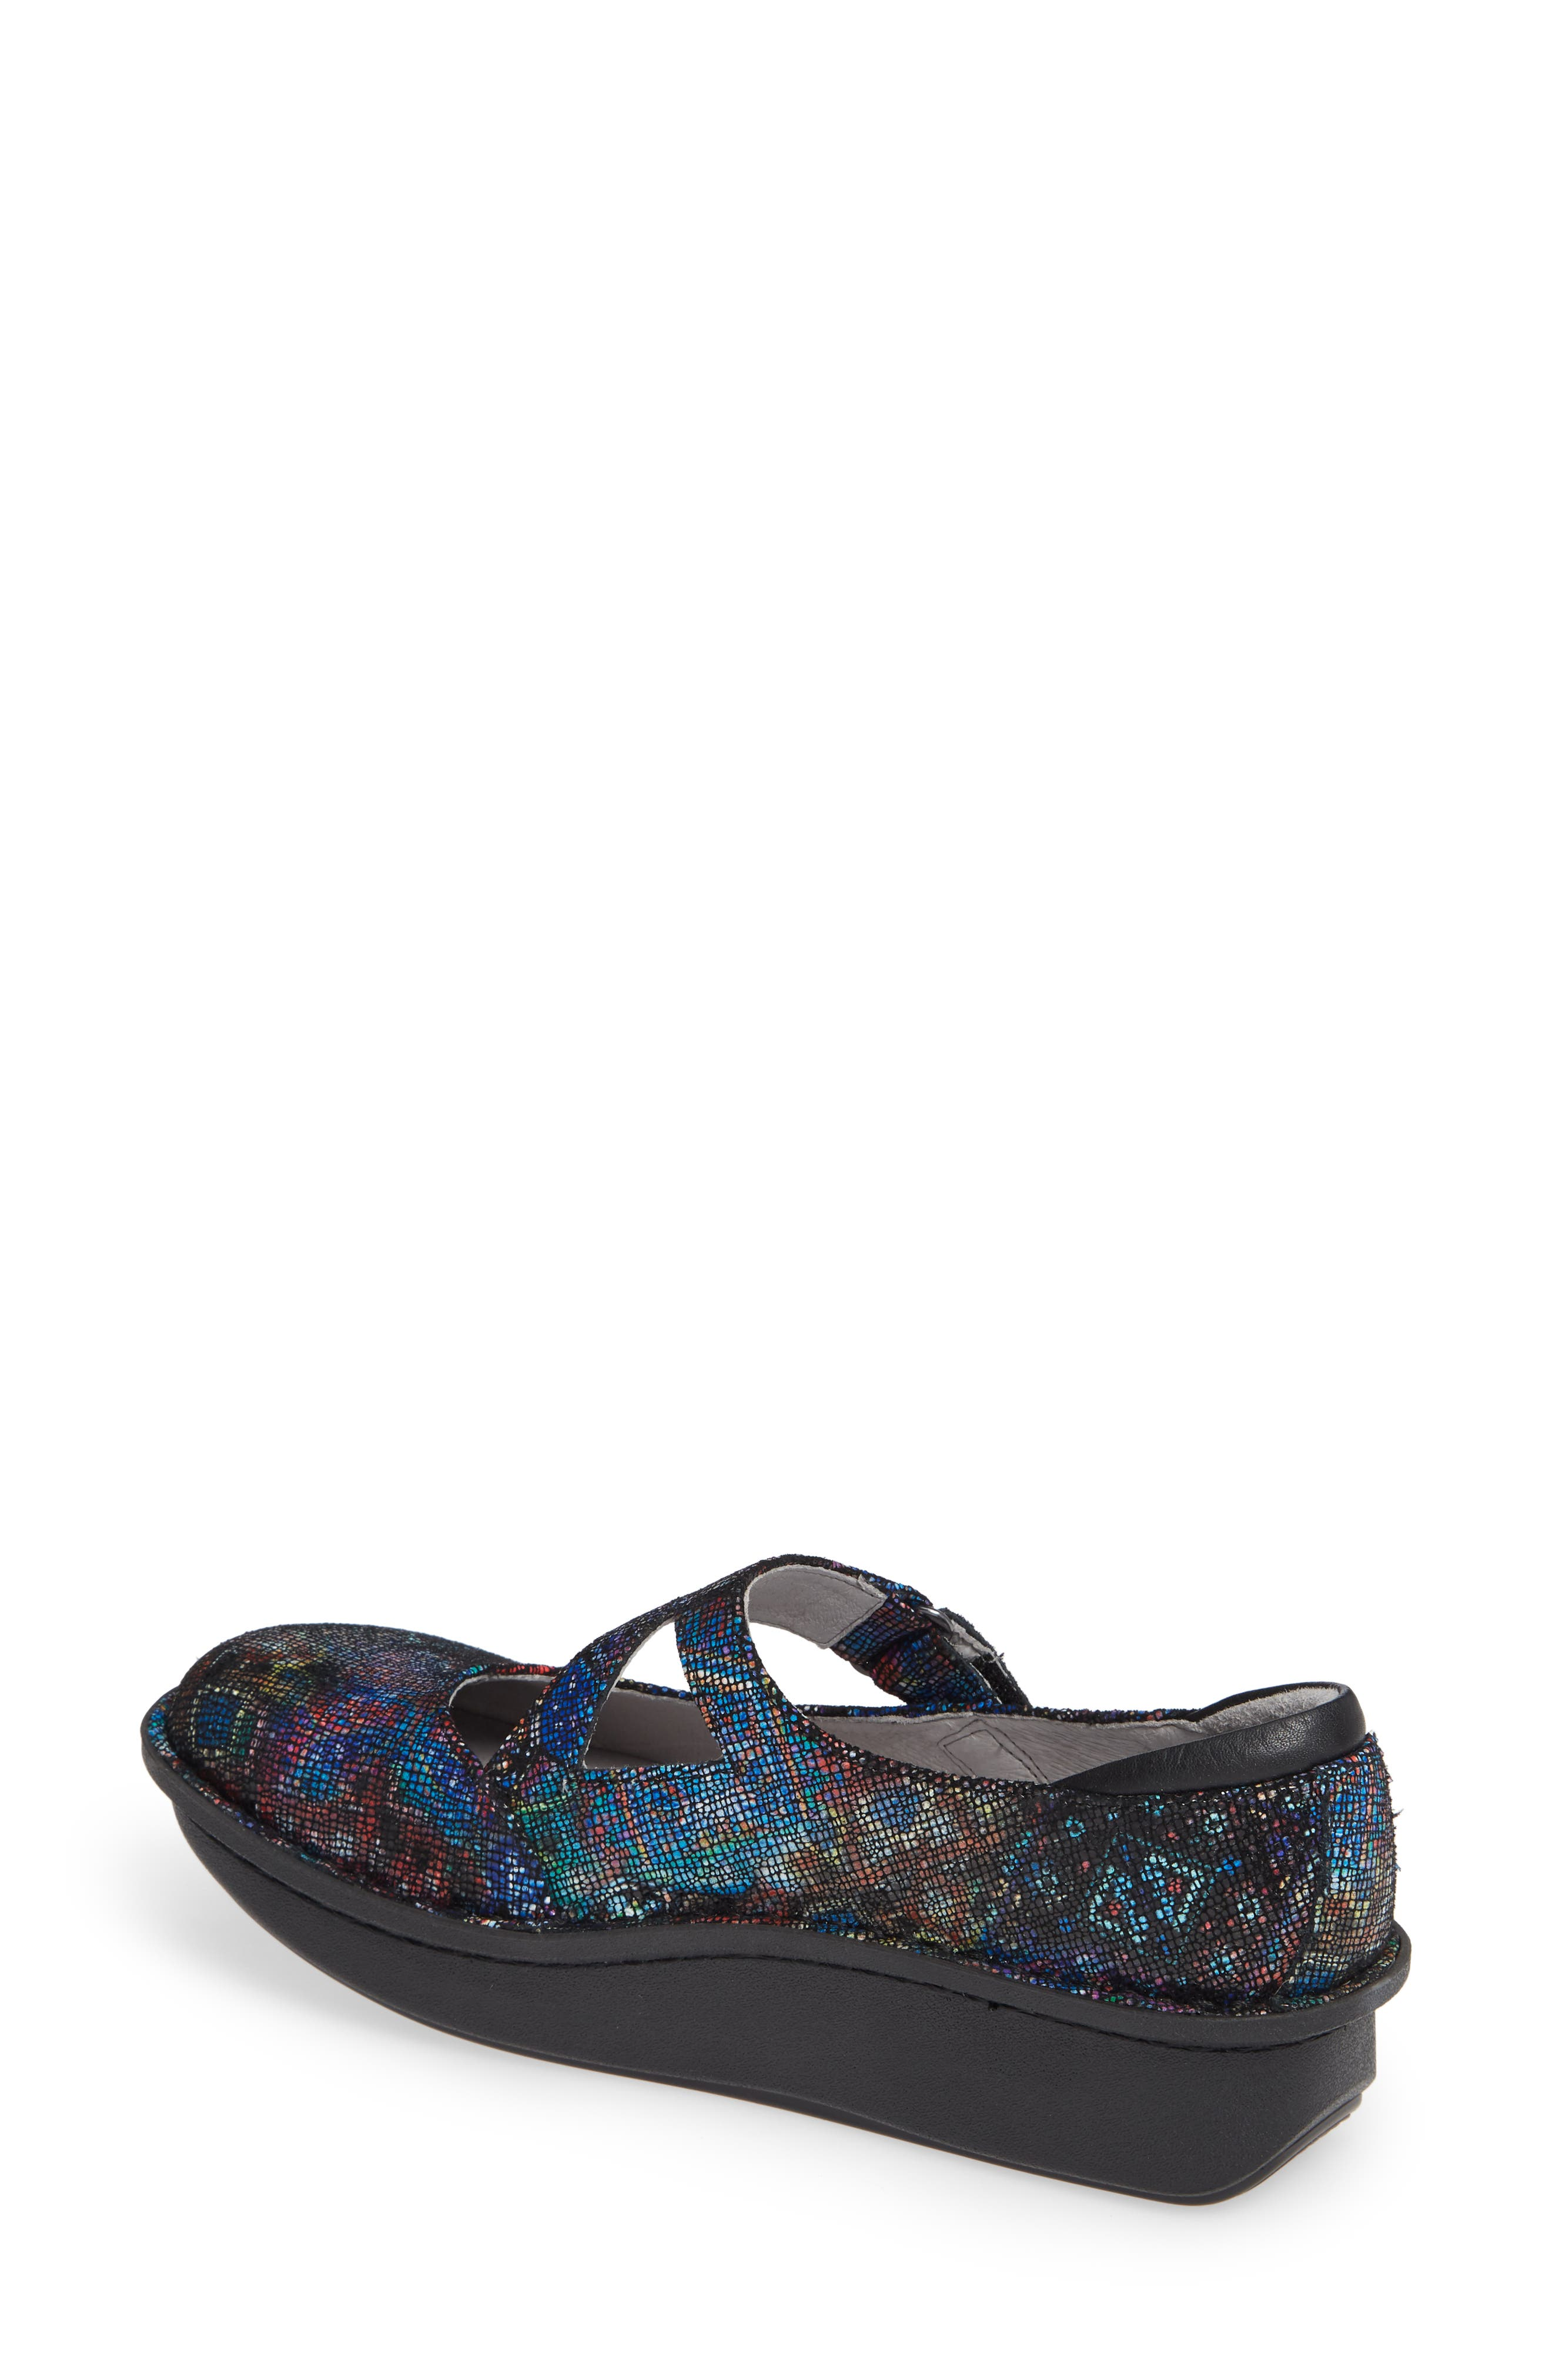 ALEGRIA,                             'Dayna' Slip-On,                             Alternate thumbnail 2, color,                             BEAUTY BLUR LEATHER